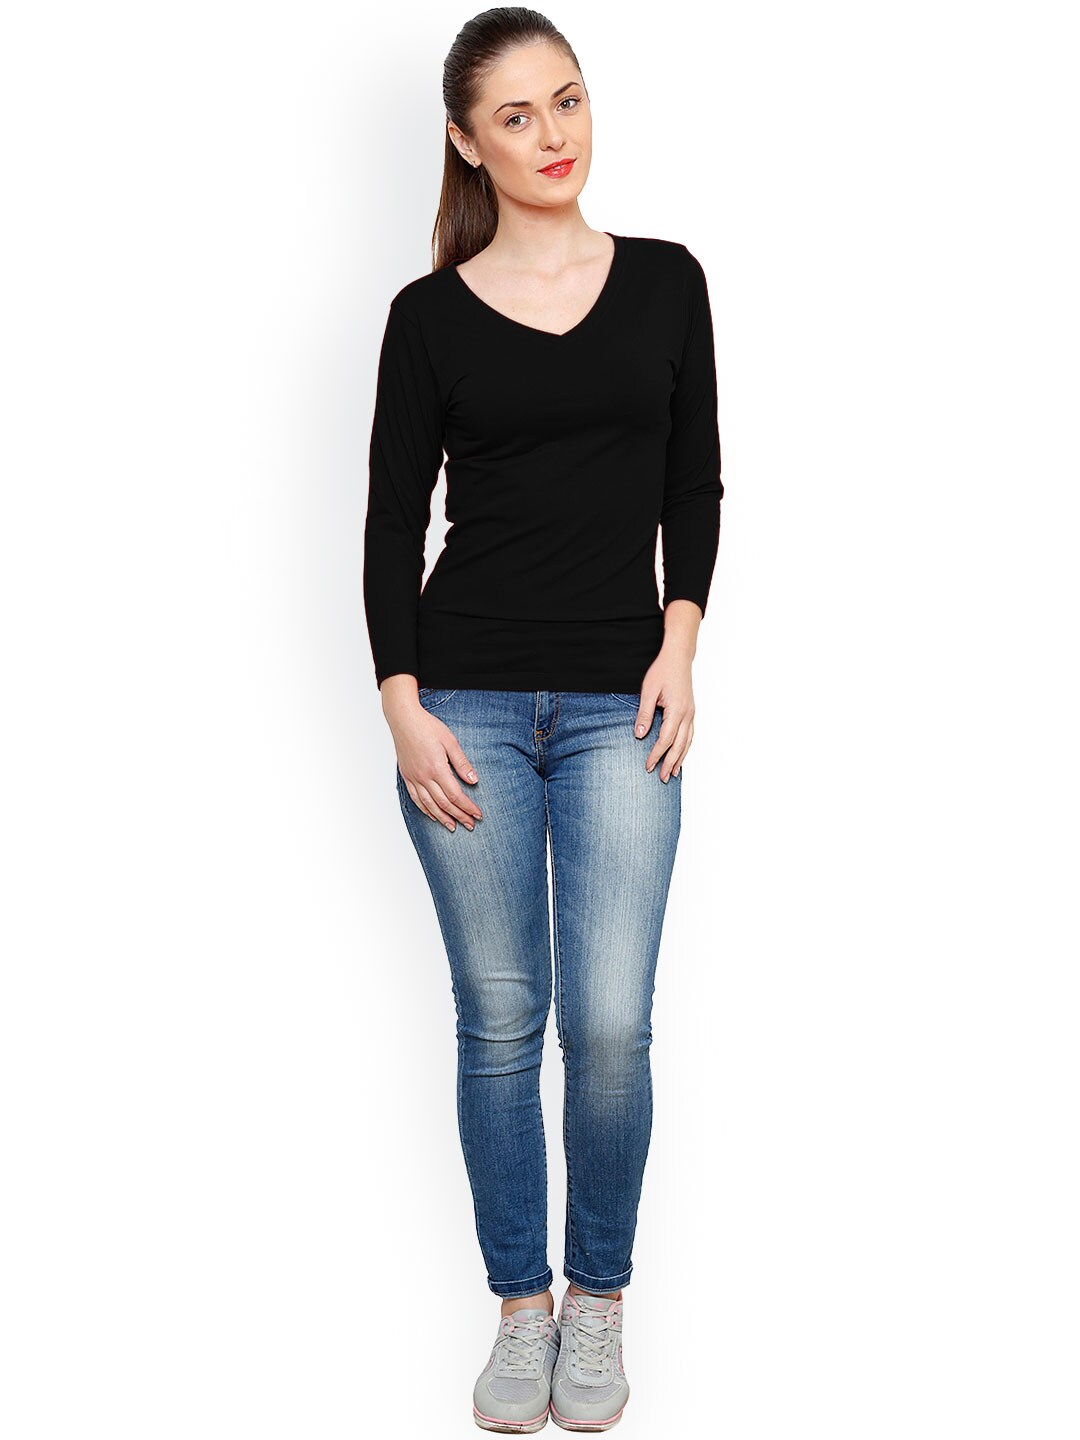 Womens Top Buy Jeans Top online at best prices in India